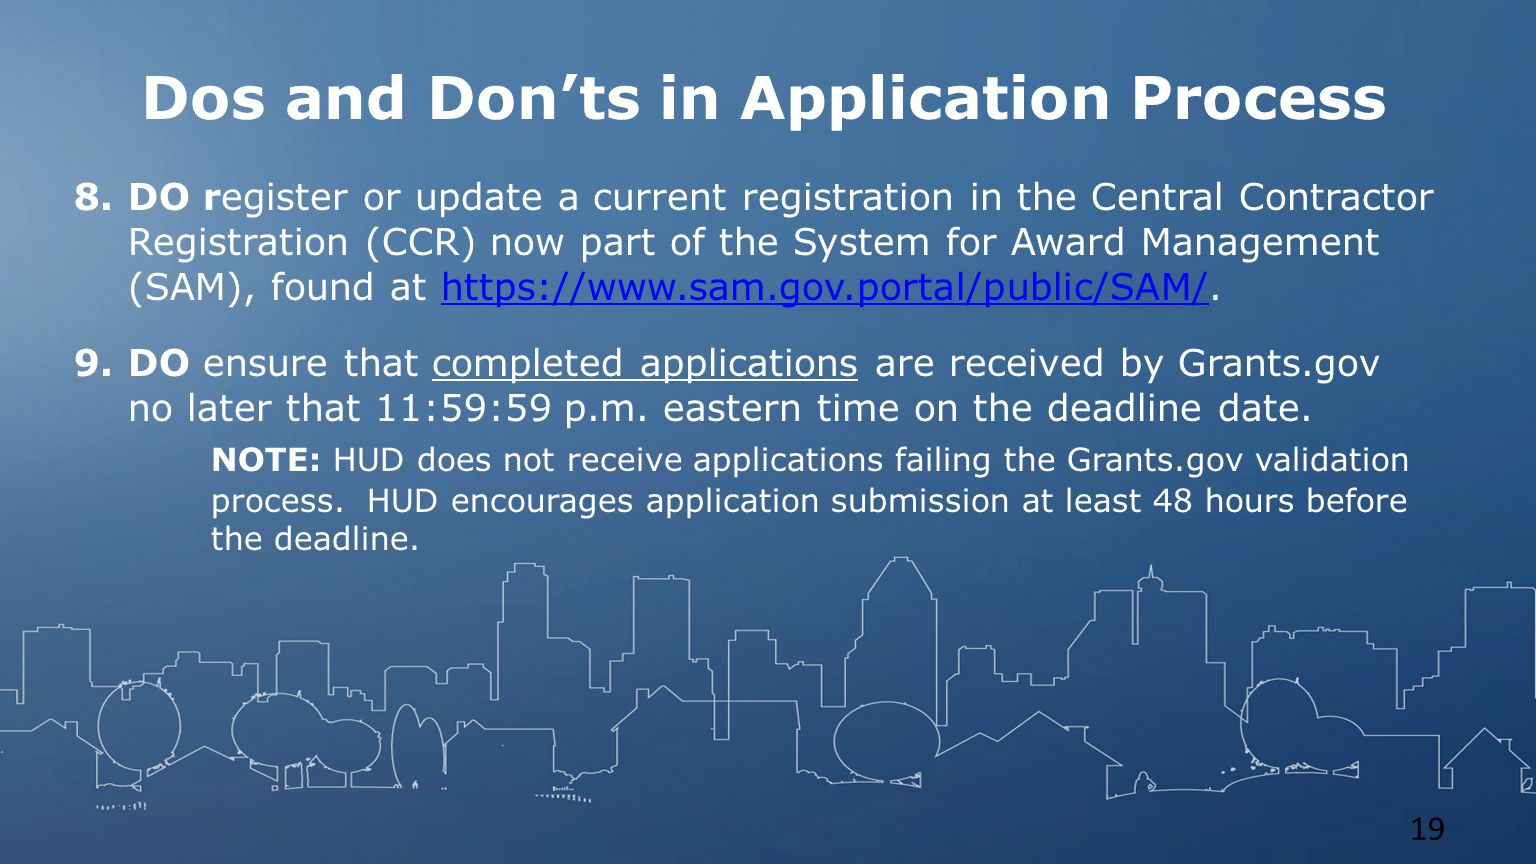 Dos and Don'ts in Application Process 8.DO register or update a current registration in the Central Contractor Registration (CCR) now part of the System for Award Management (SAM), found at https://www.sam.gov.portal/public/SAM/.https://www.sam.gov.portal/public/SAM/ 9.DO ensure that completed applications are received by Grants.gov no later that 11:59:59 p.m.